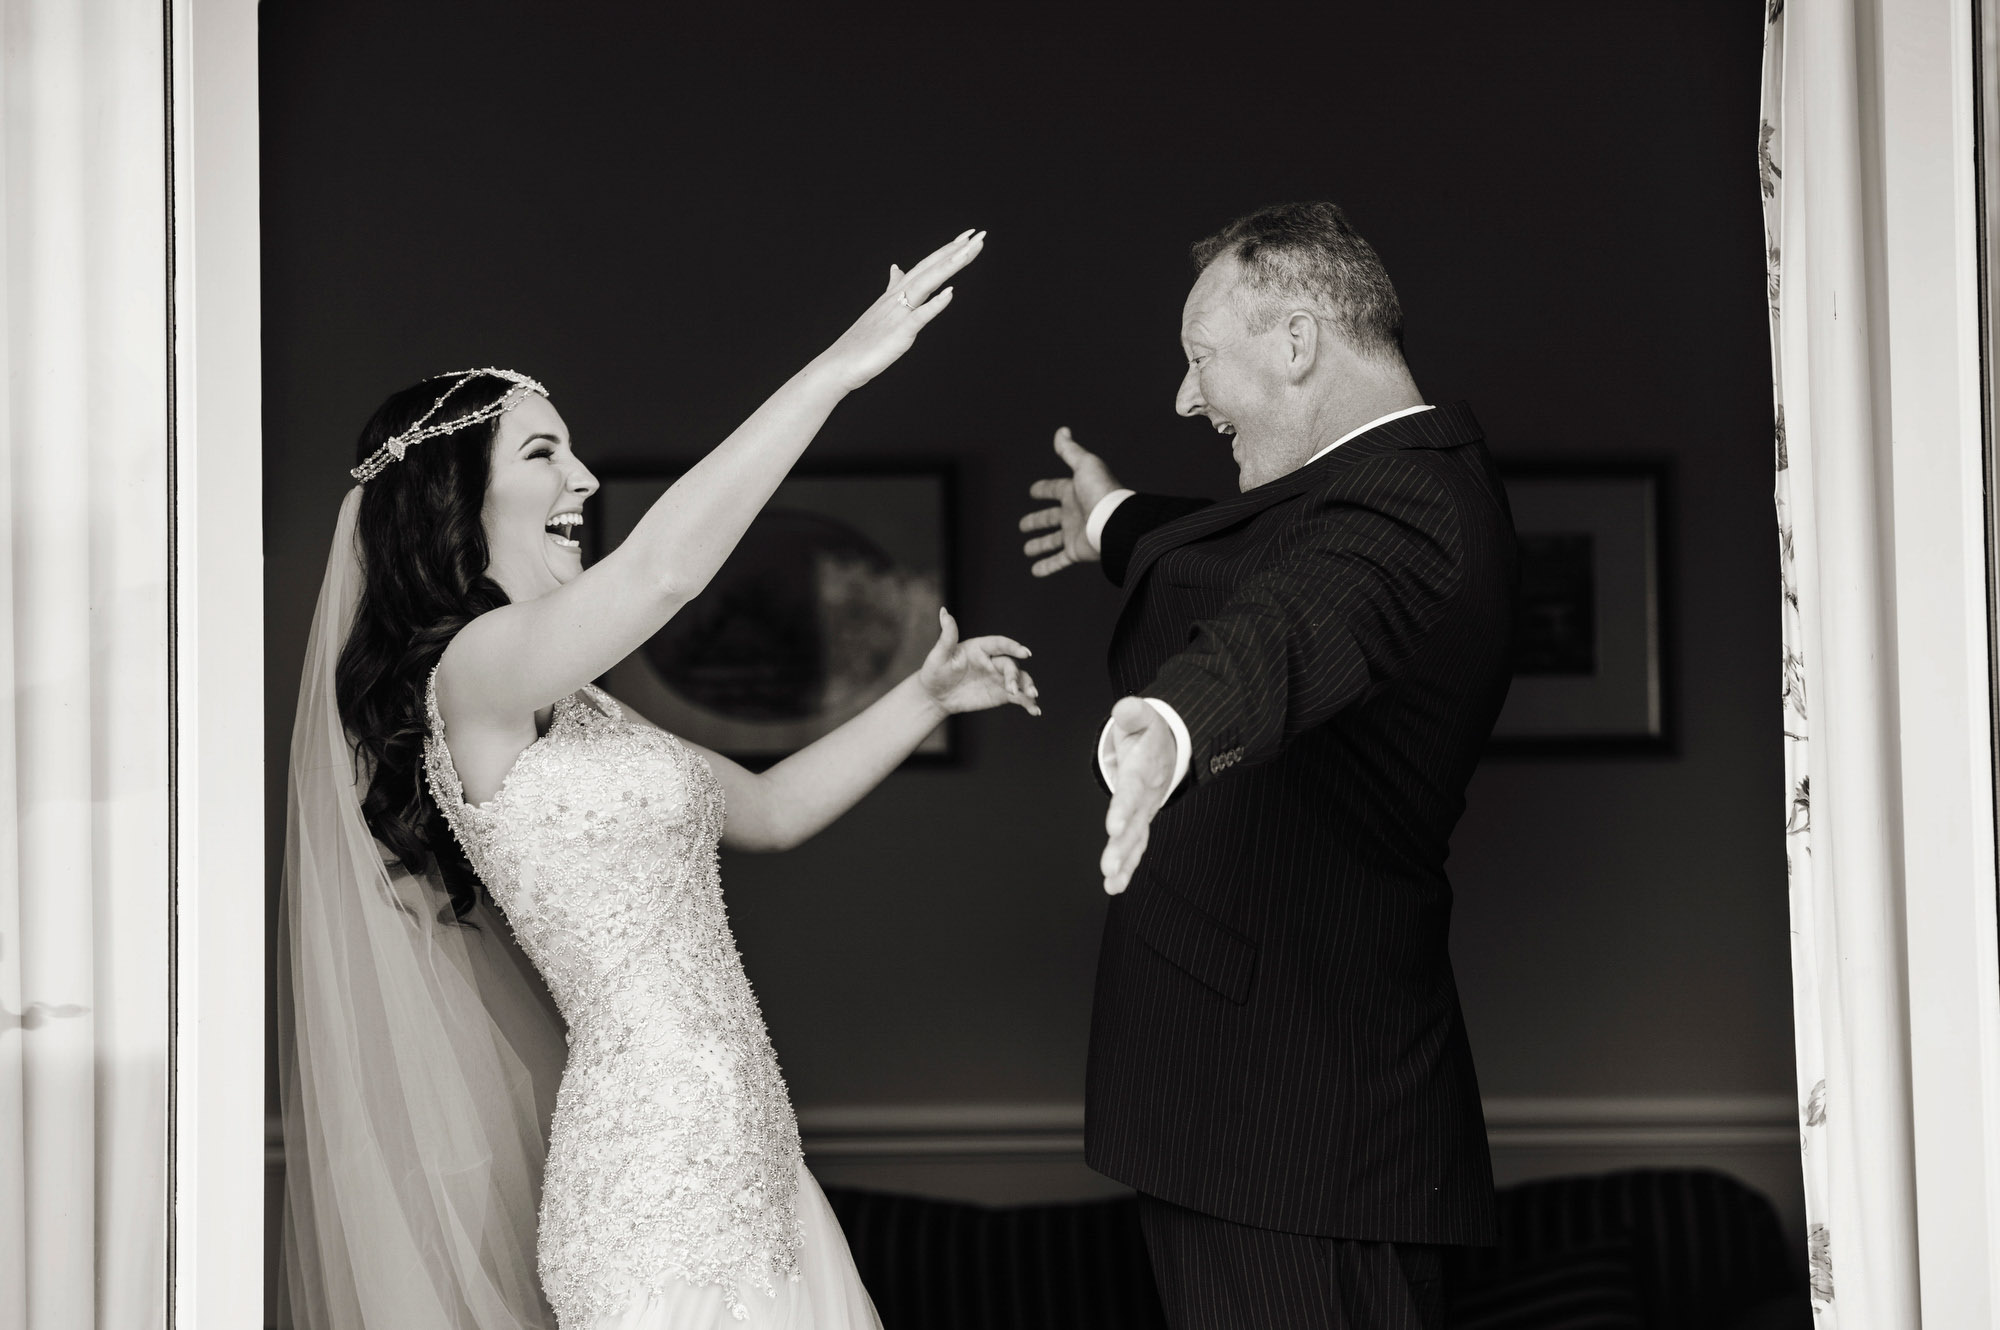 Bride embraces father at first look - photo by Jerry Ghionis